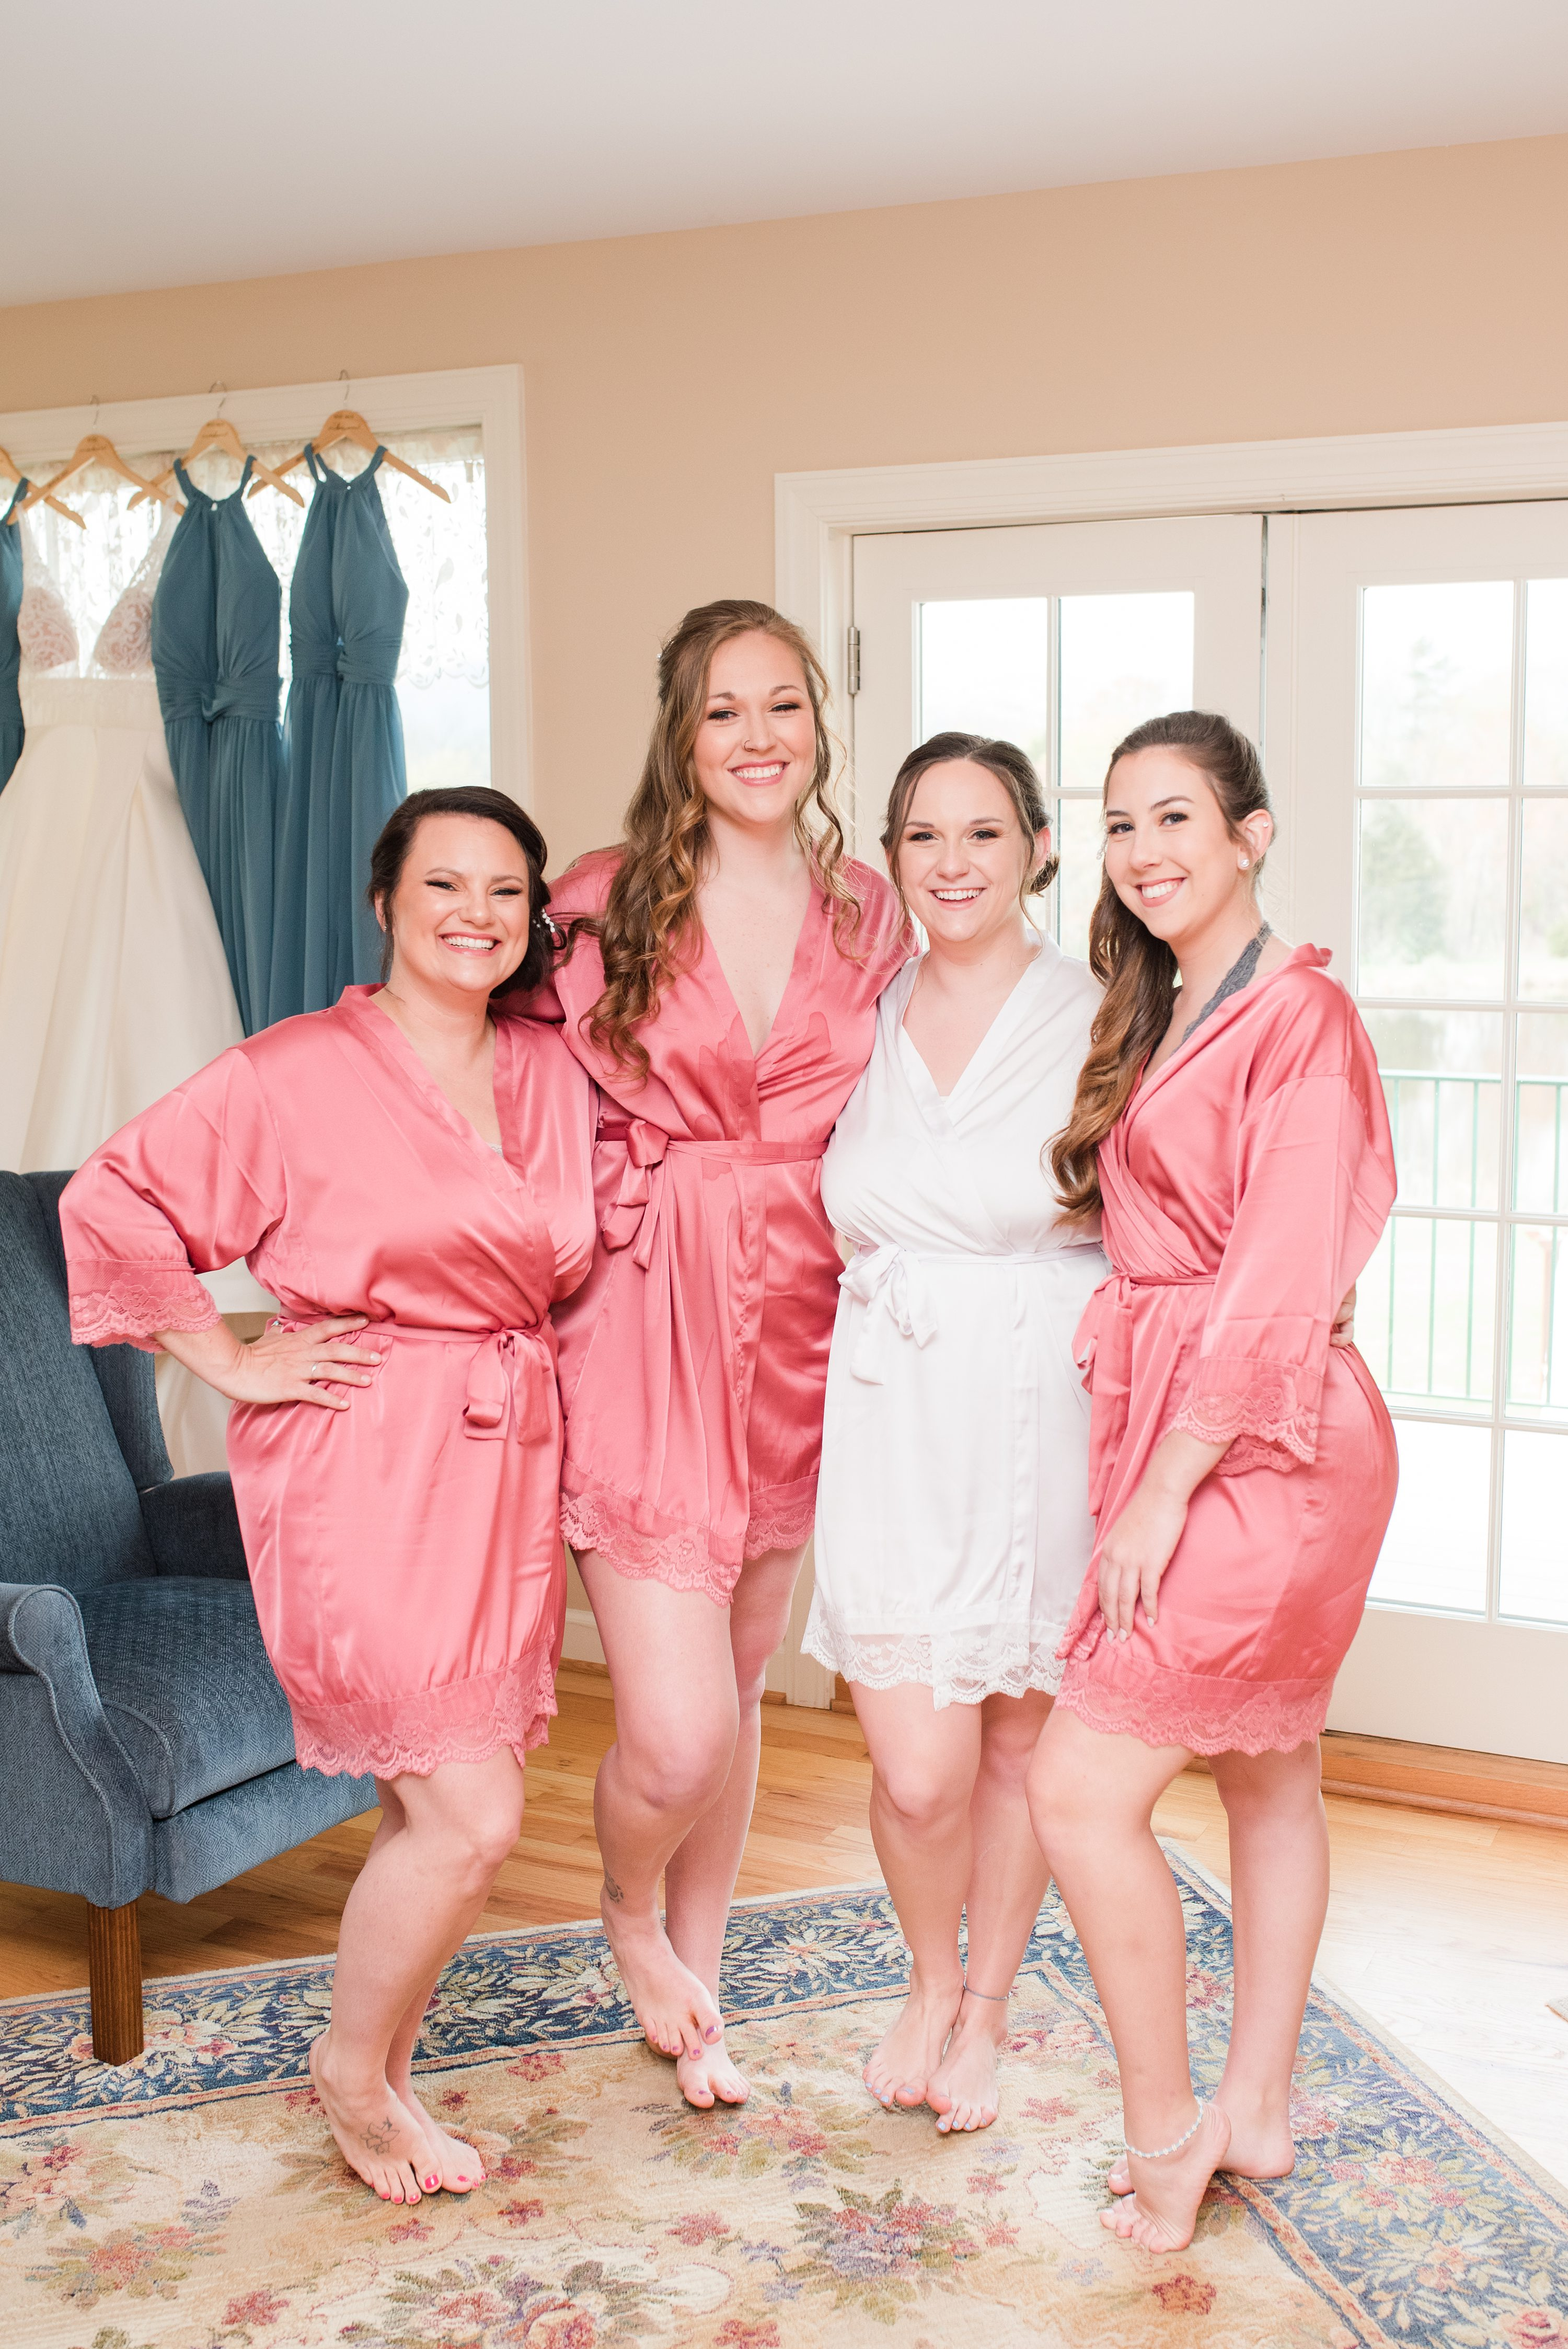 Southern Wedding,bride and bridesmaids,wedding robes,bridesmaids,bridesmaids in robes,bride,bridal party on bed,Charlottesville Wedding Photographer